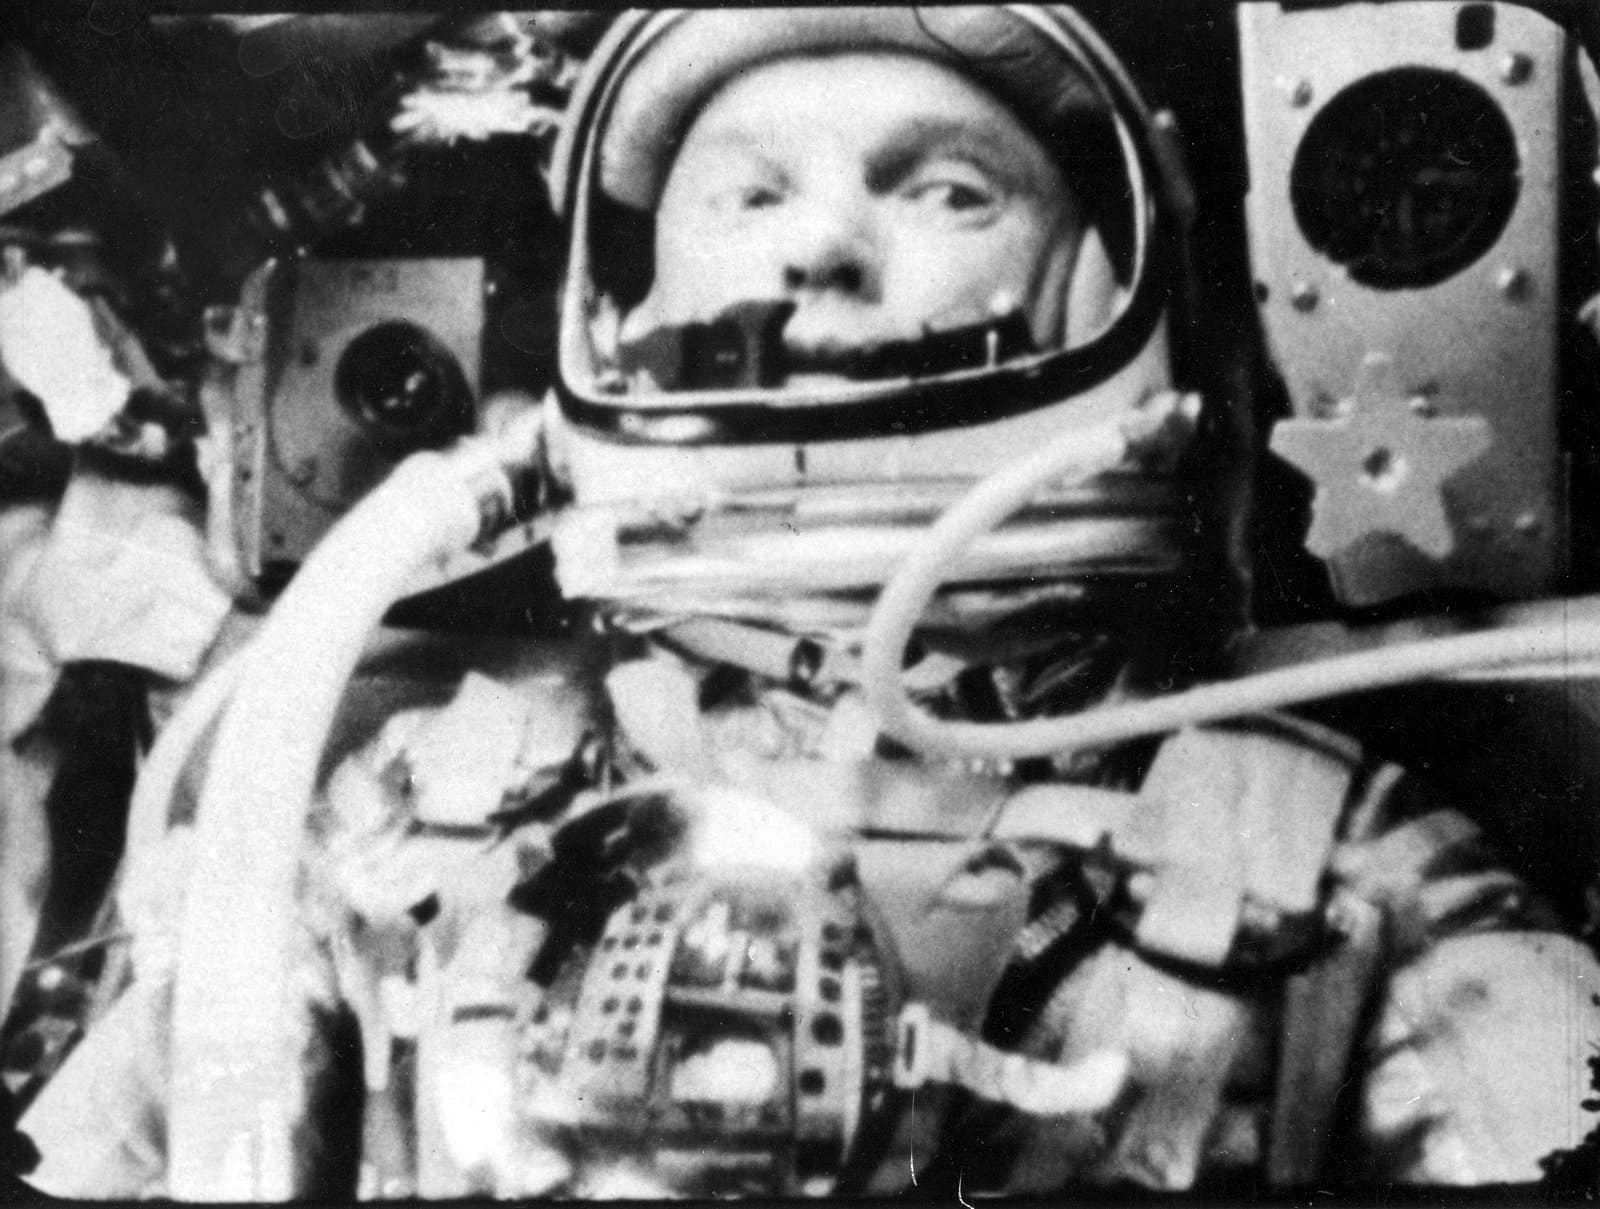 Astronaut John Glenn in a State of Weightlessness During Friends